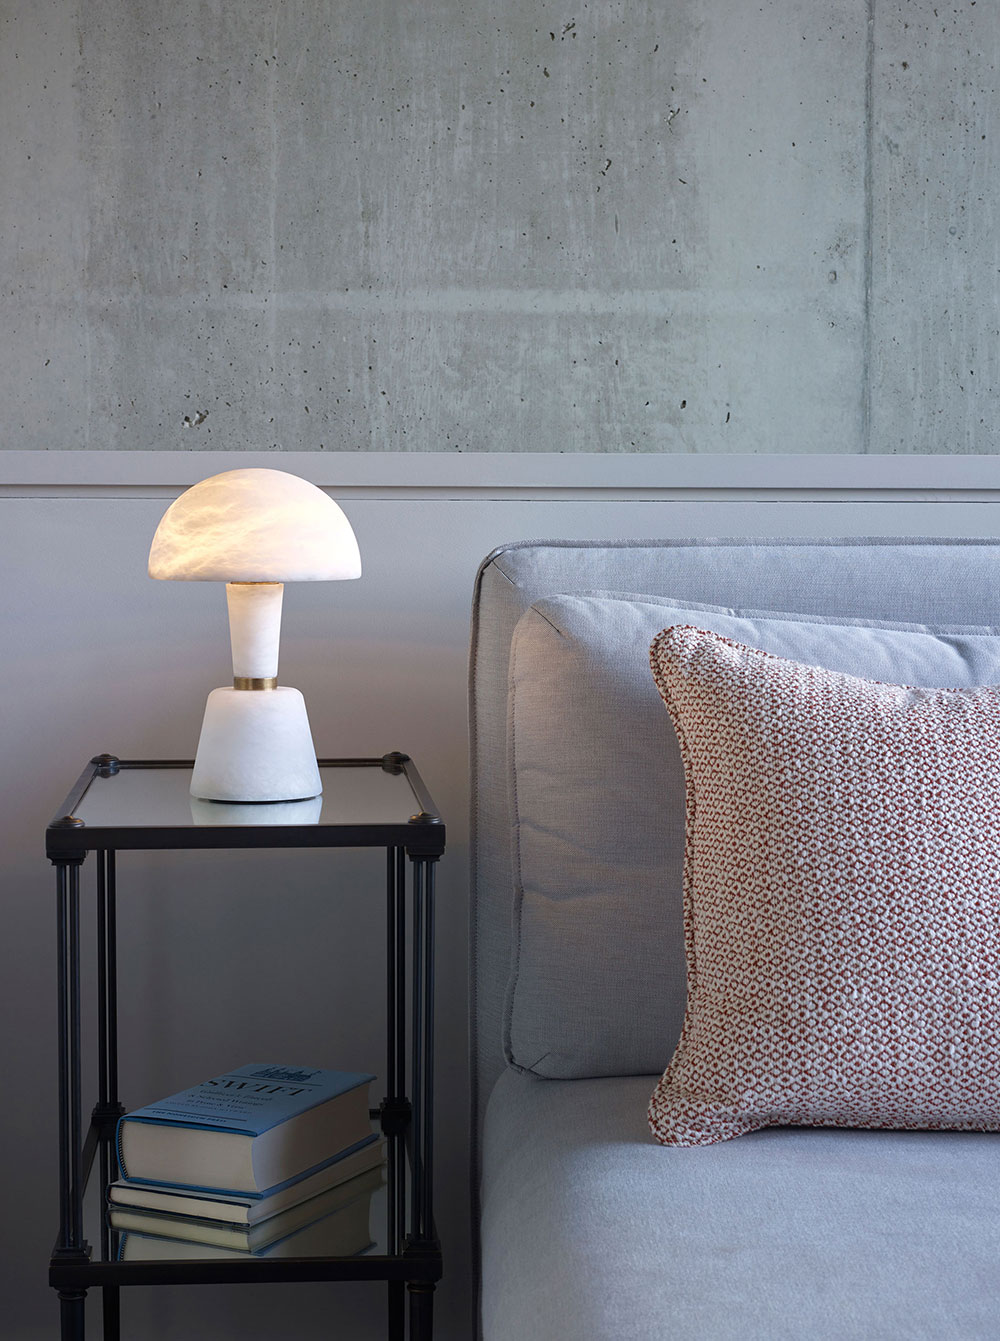 Mini Alabaster Cep by Collier Webb - a luxury cordless table lamp